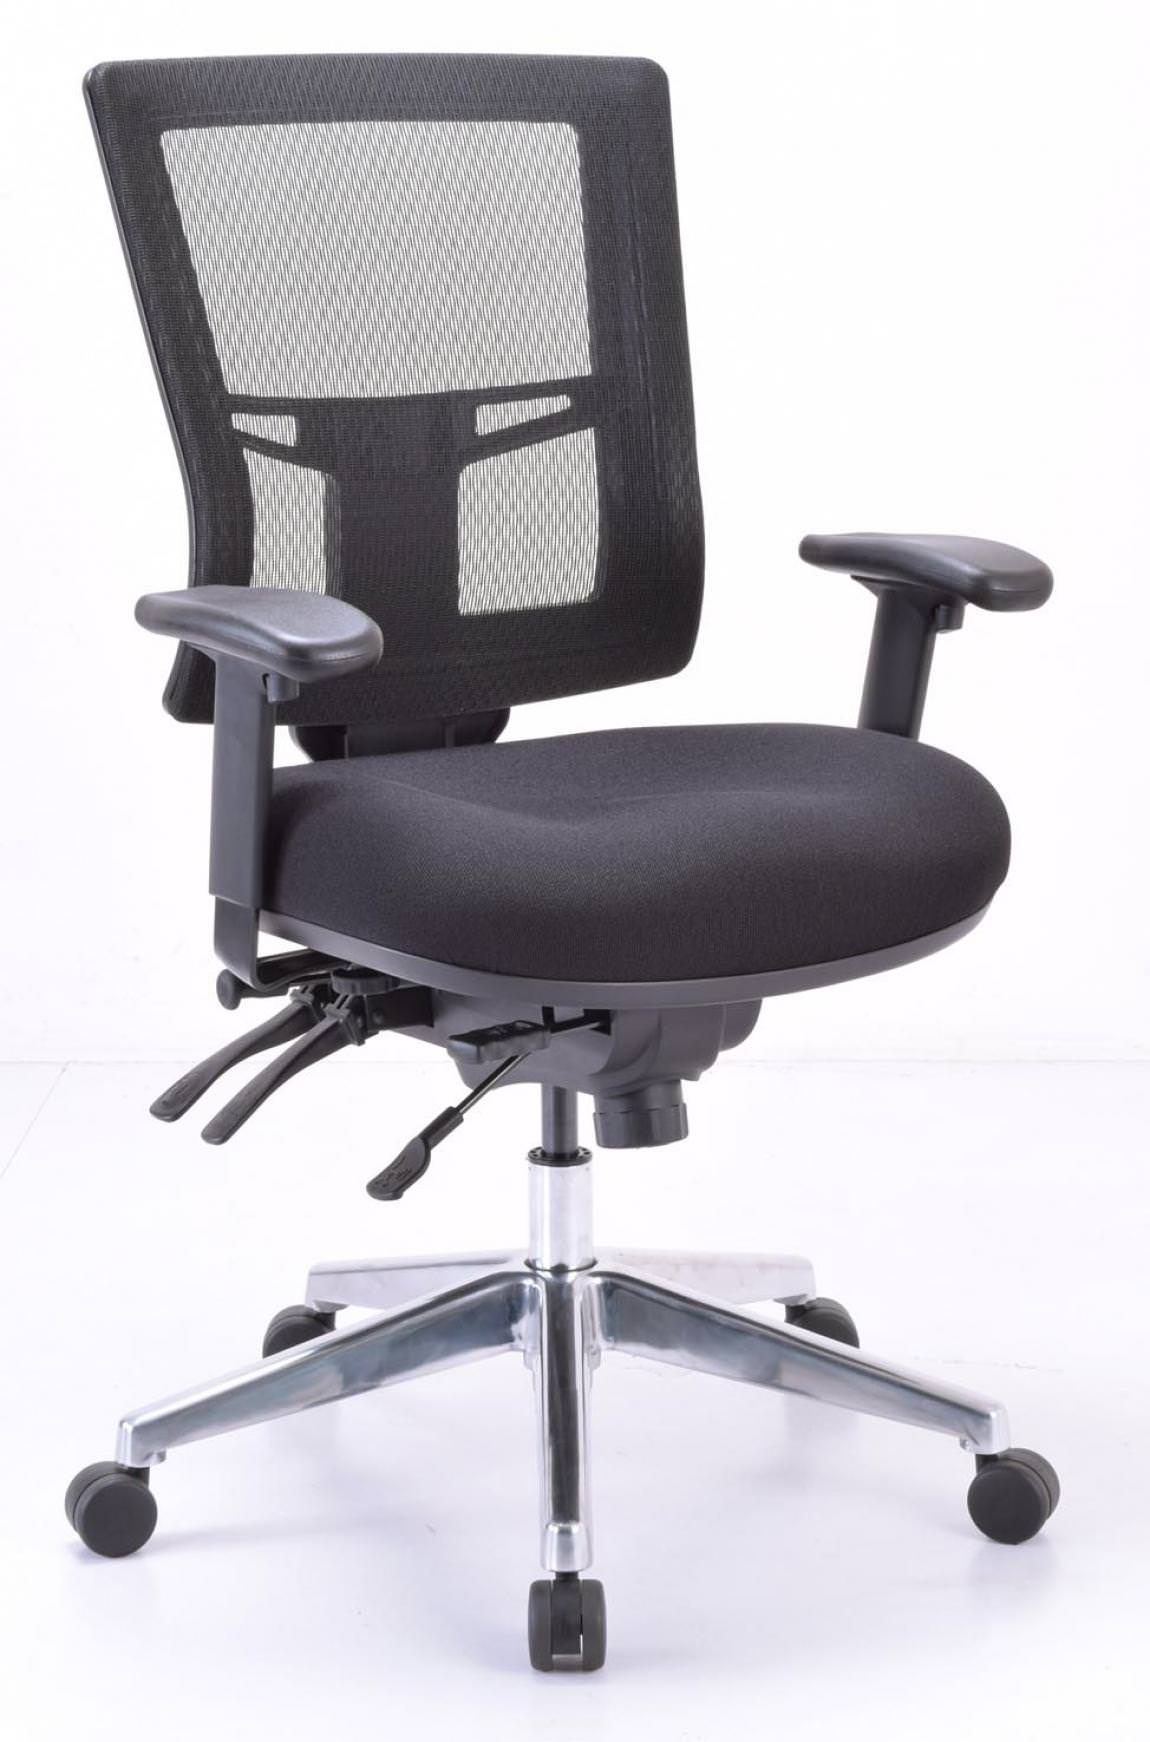 big and tall hunting chairs chair steel design office 500 lbs capacity